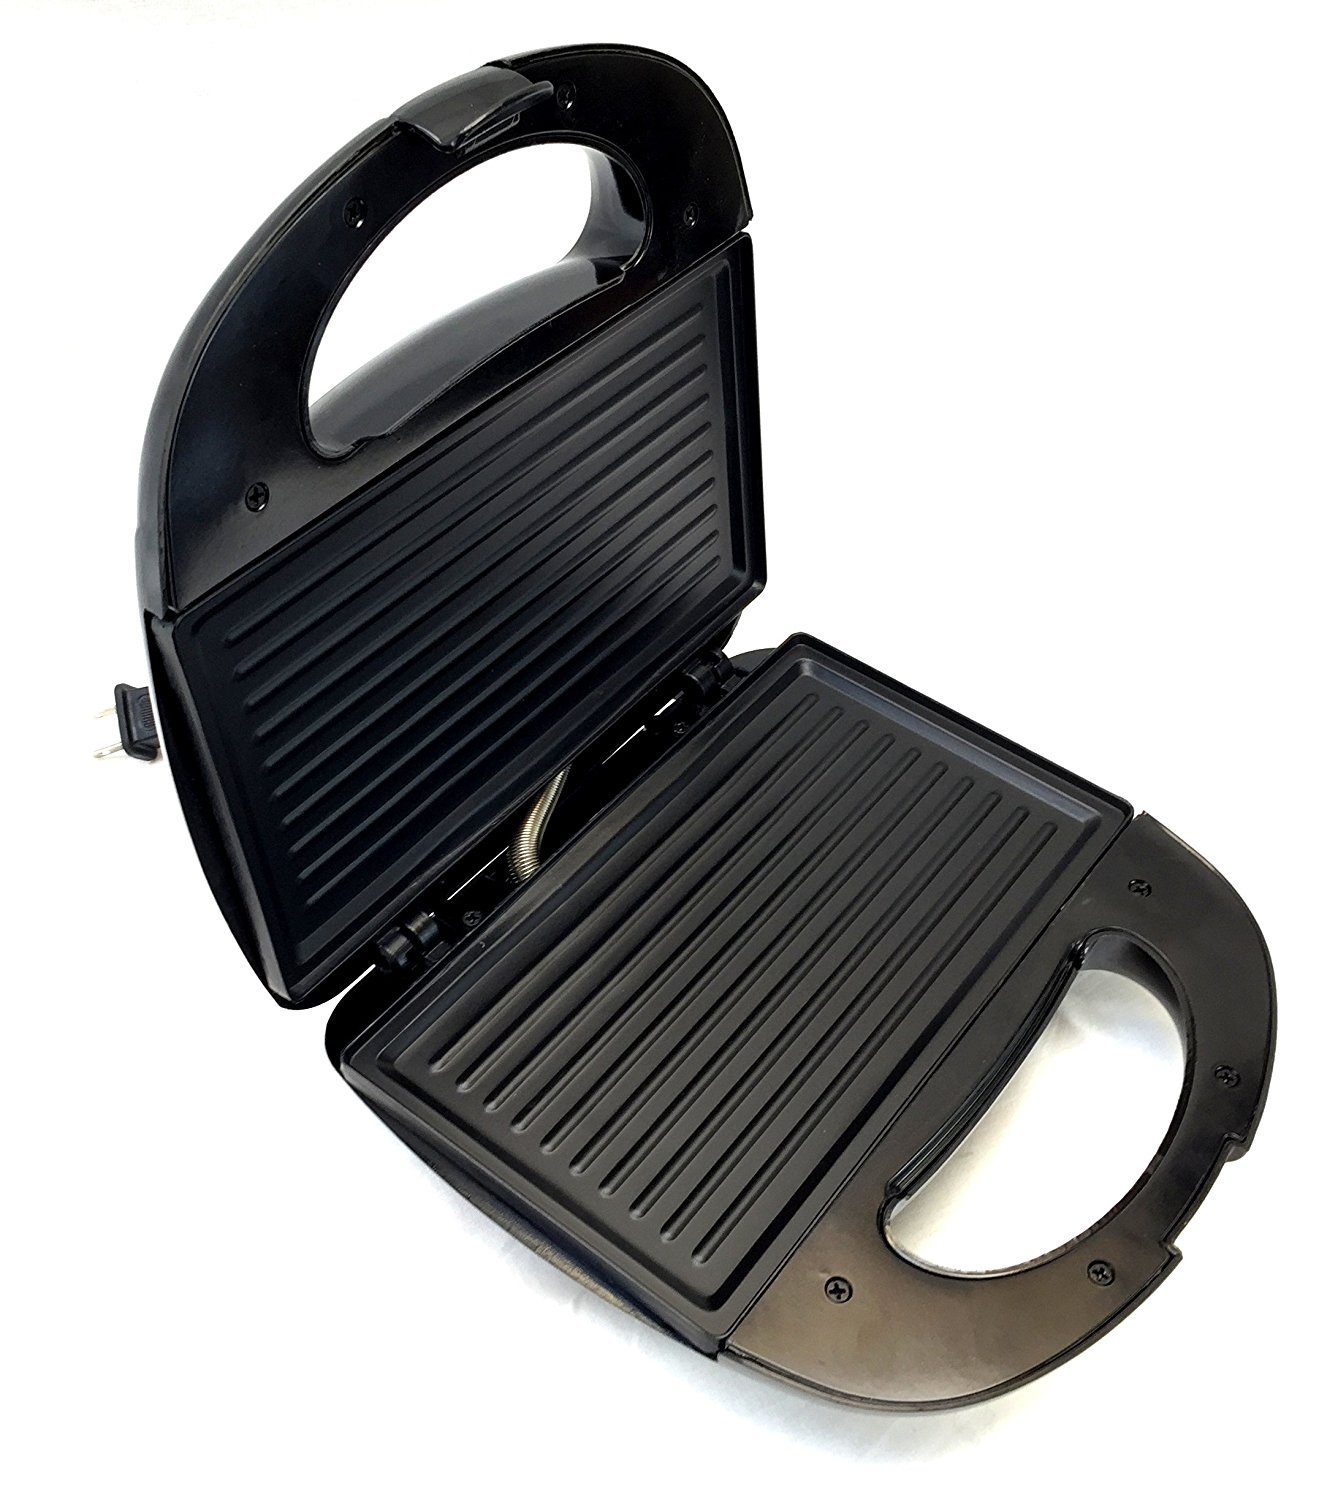 Stainless Steel Non-Stick Panini Press Sandwich Maker Grill - Make Professional Panini SandwichesRoyal Panini Maker By Brentwood. Lavohome TM.., By Unique Imports